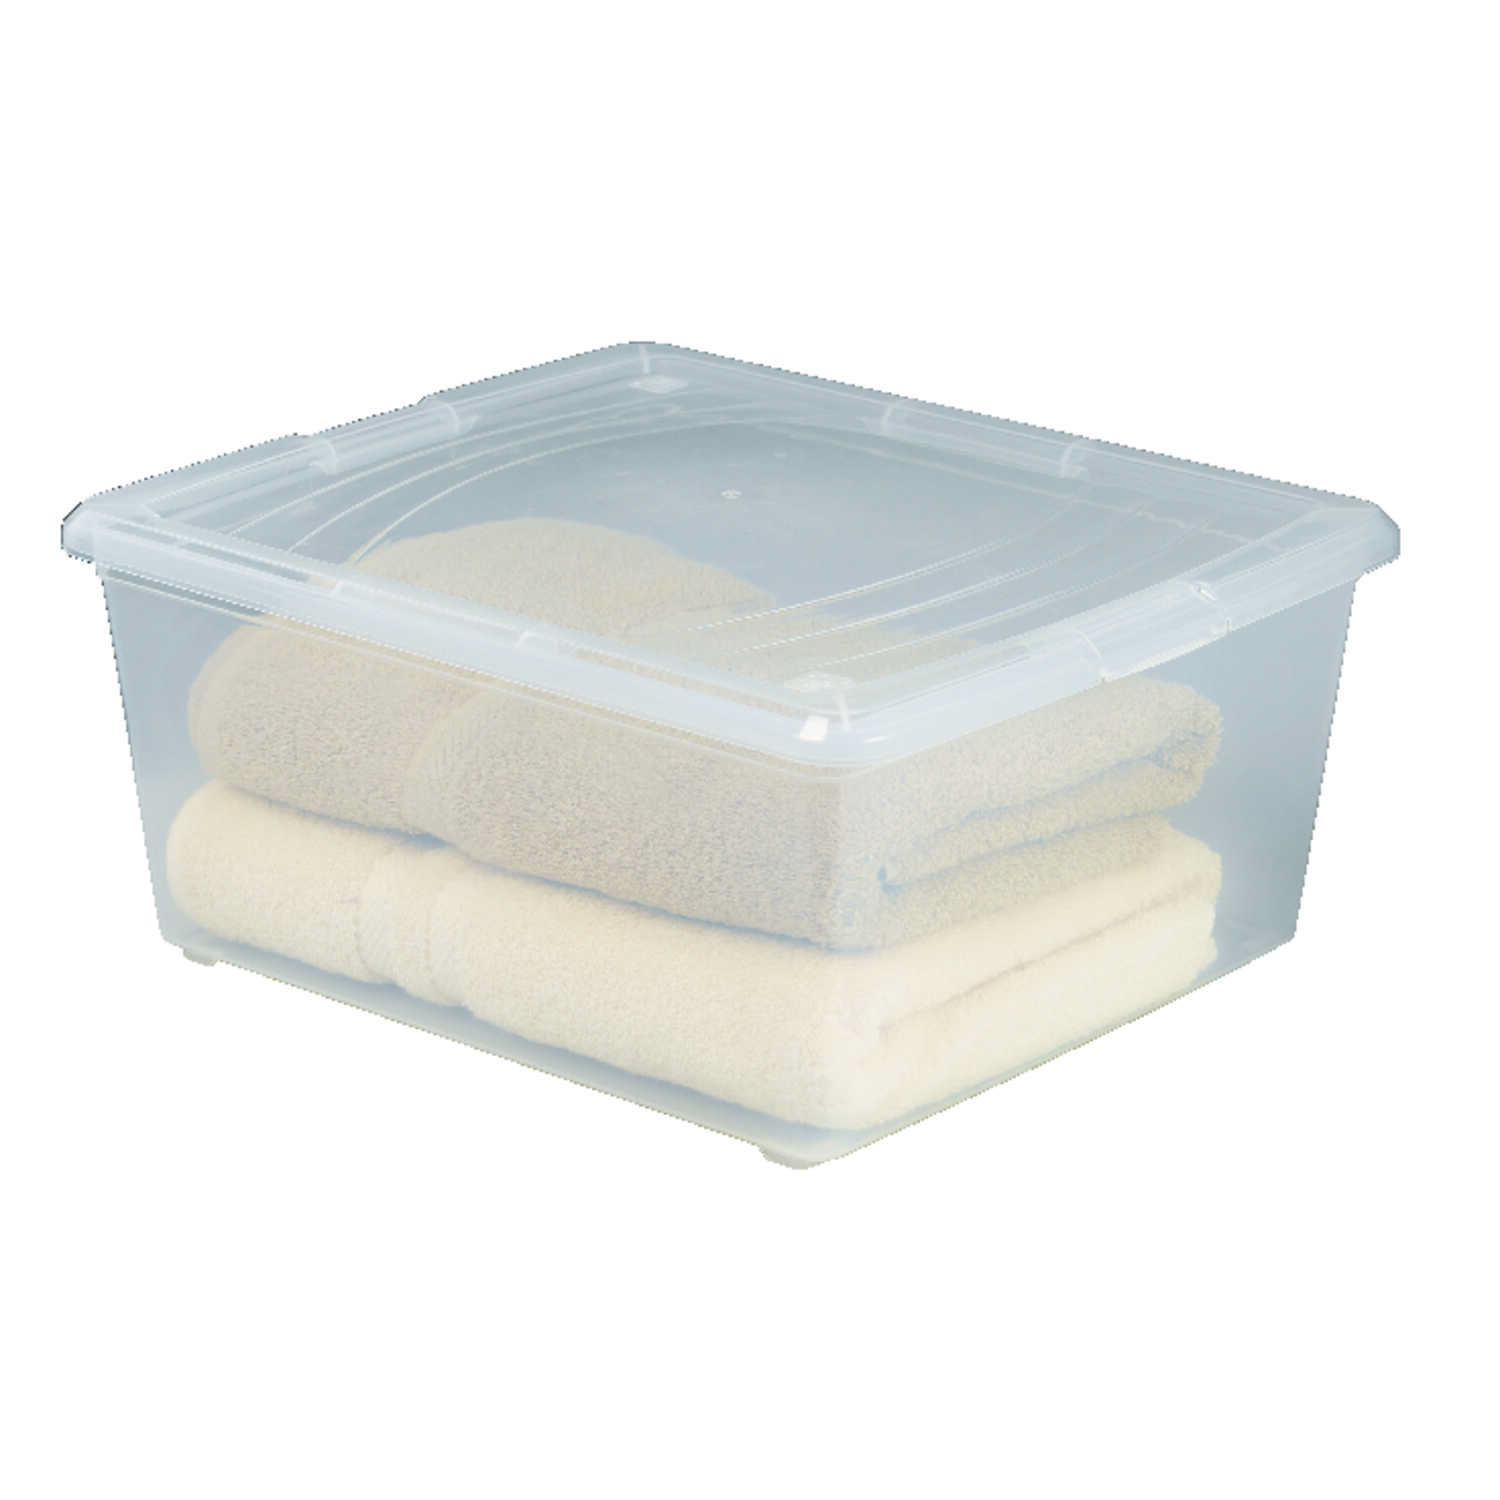 Iris  Modular  7.1 in. H x 13.75 in. W x 16.18 in. D Stackable Storage Box